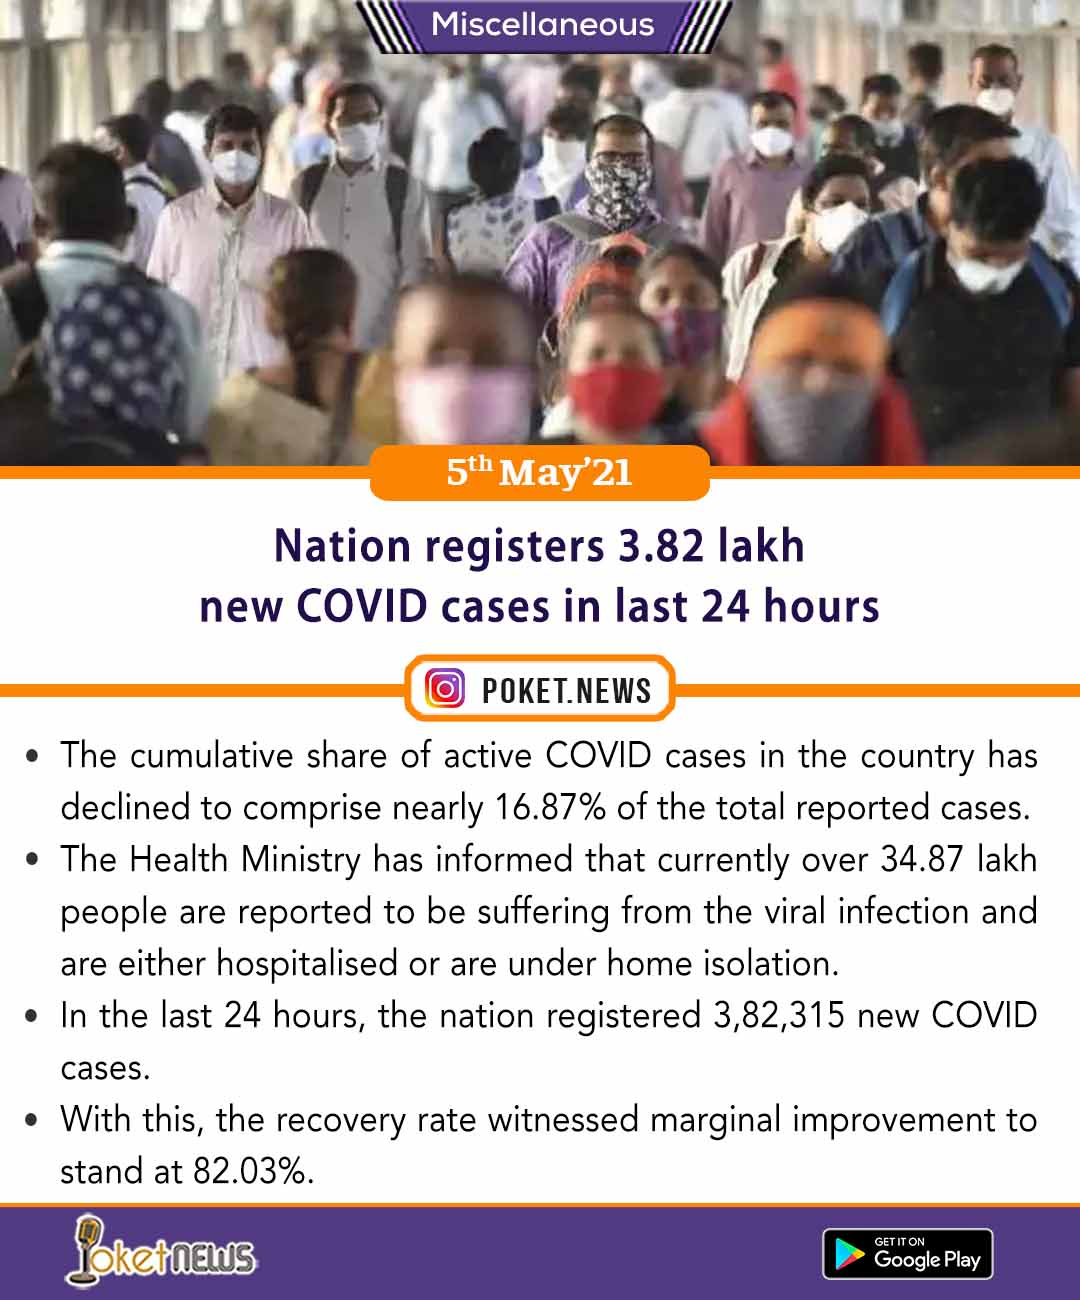 Nation registers 3 lakh 82 thousand 315 new COVID cases in last 24 hours